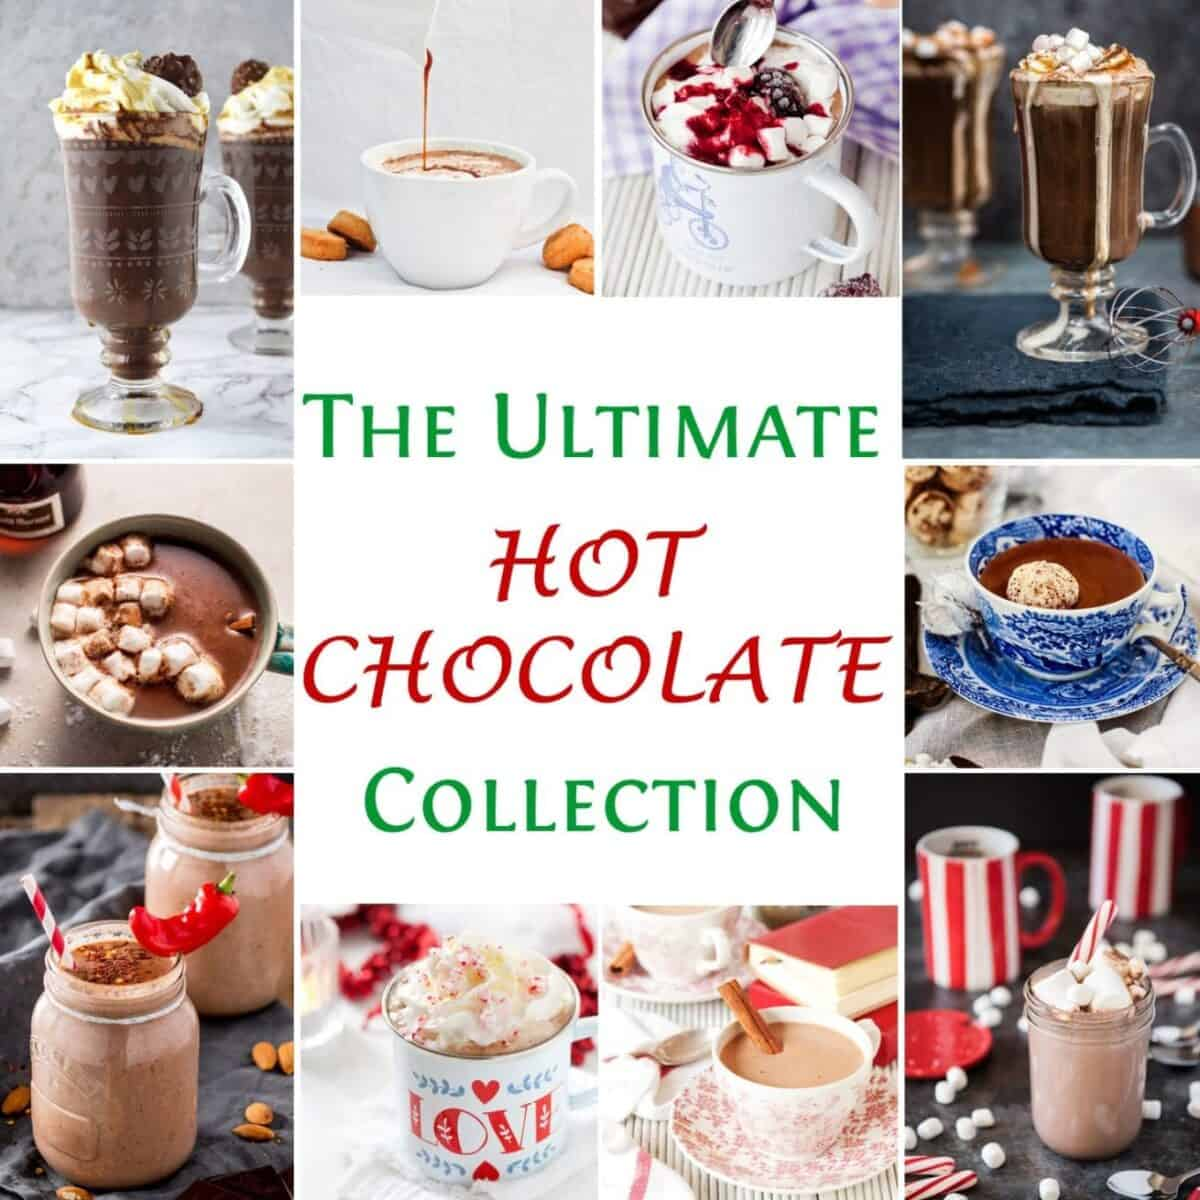 Collage of Hot Chocolate images with text overlay